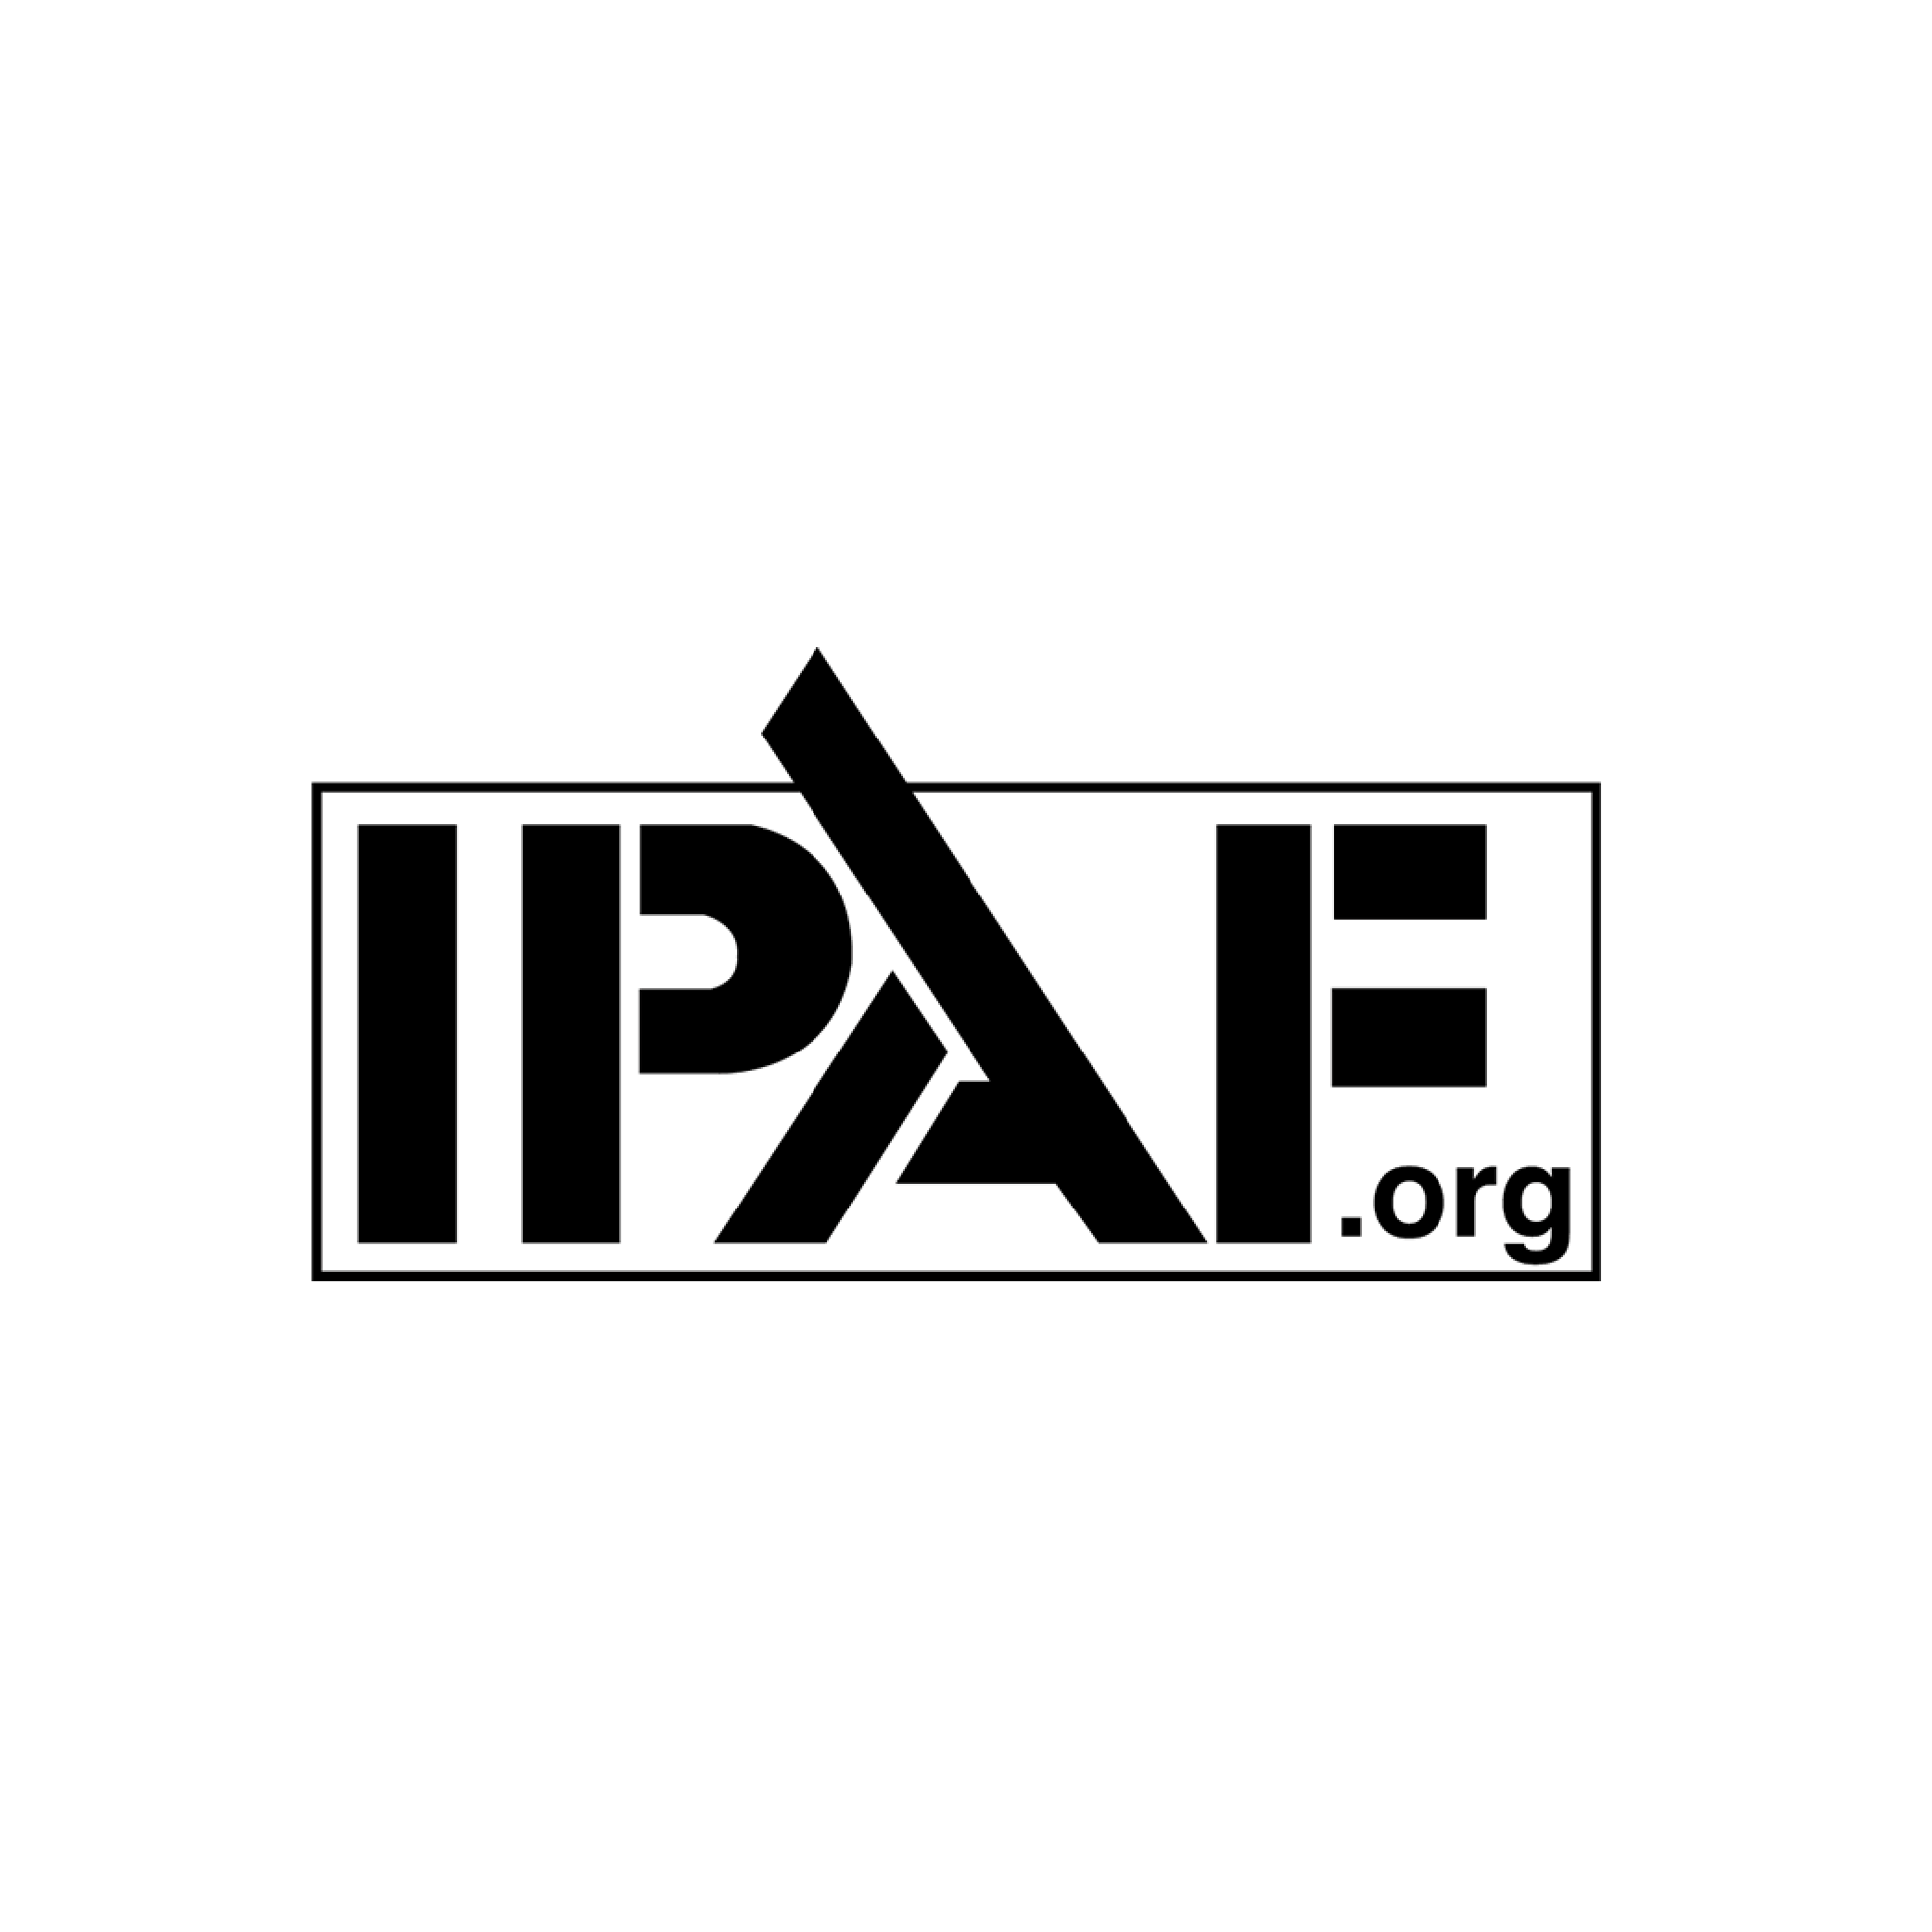 APPROVED OPERATOR - The International Powered Access Federation (IPAF) promotes the safe and effective use of powered access equipment worldwide.